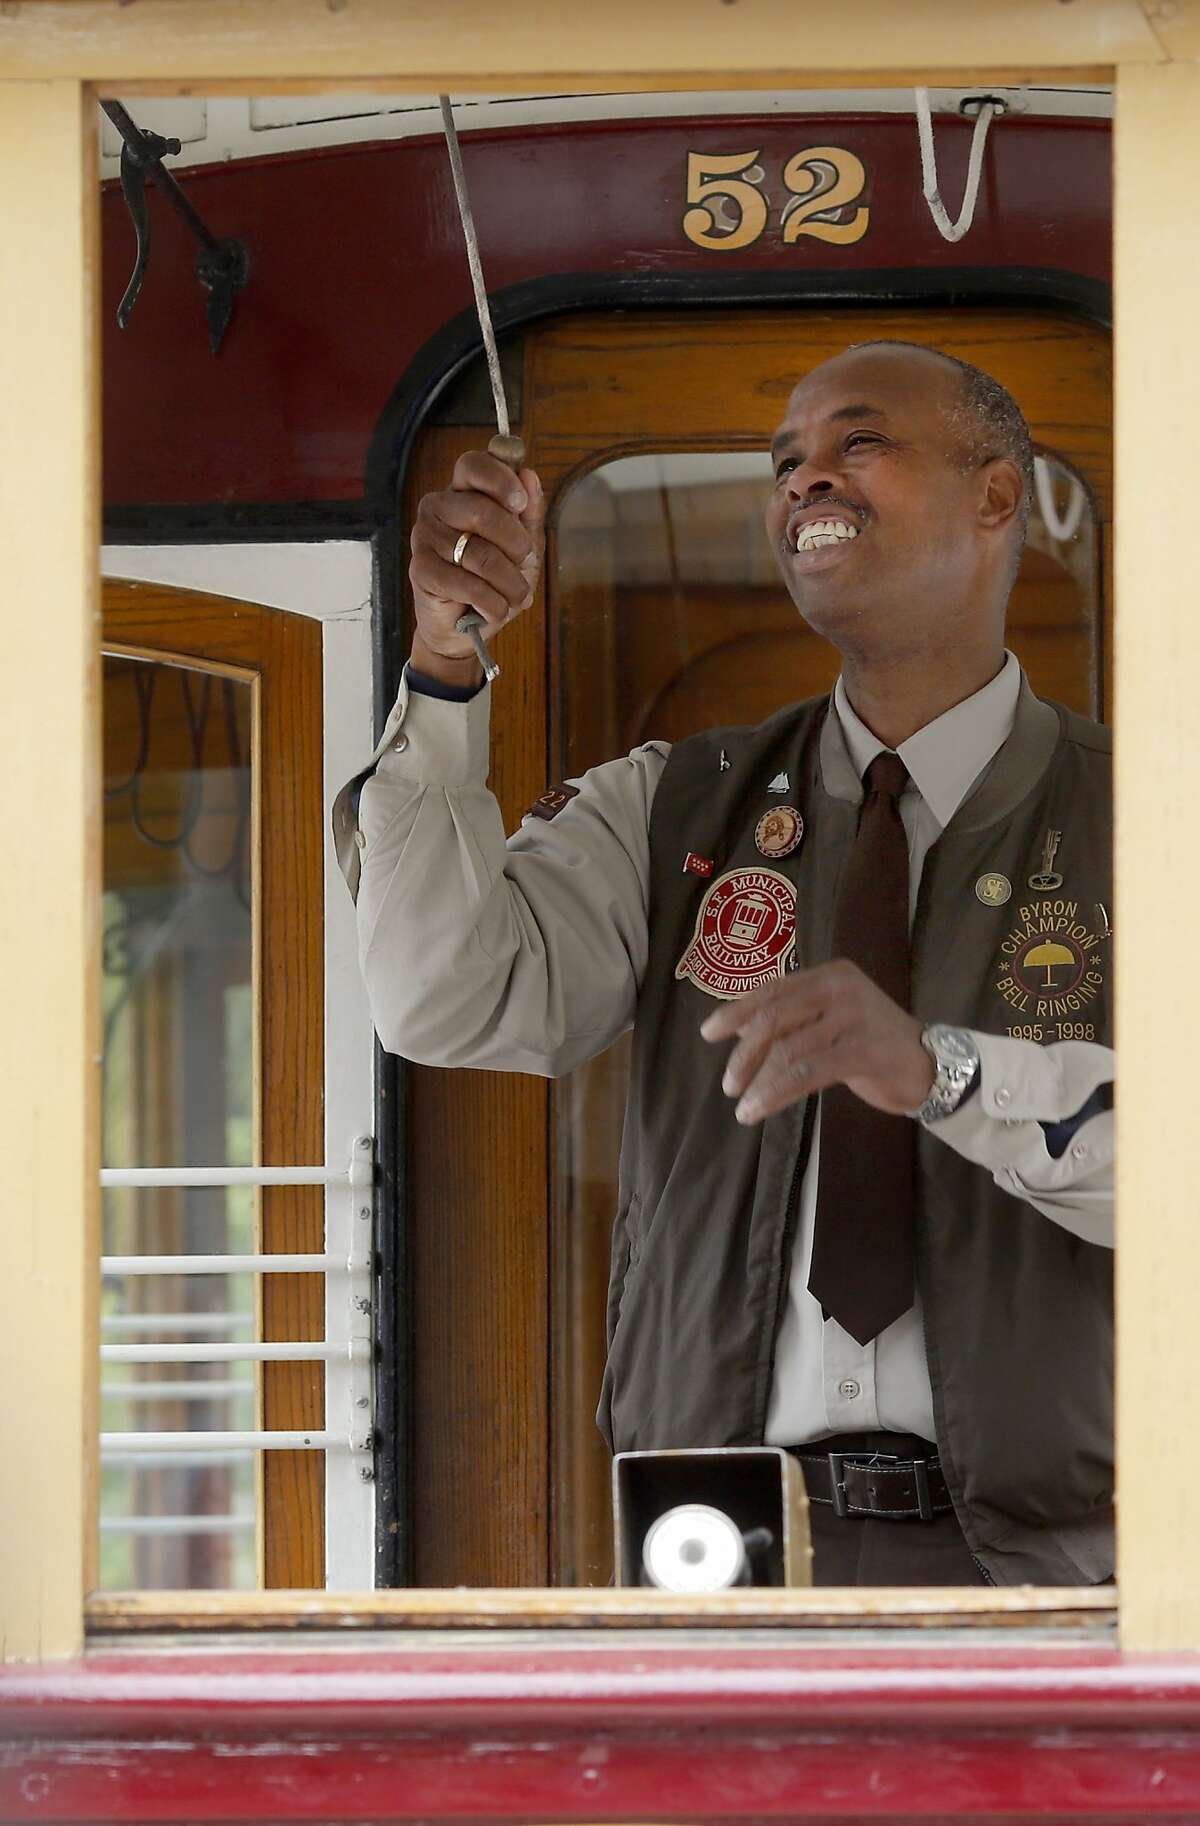 Byron Cobb used quick wrist strokes to get into the finals and eventually win the contest Thursday July 9, 2015. The 52nd annual Cable Car Bell Ringing contest was held in Union Square in San Francisco, Calif. For the first time ever there was a tie for the winner which resulted in a 30 second runoff which was won by Byron Cobb.